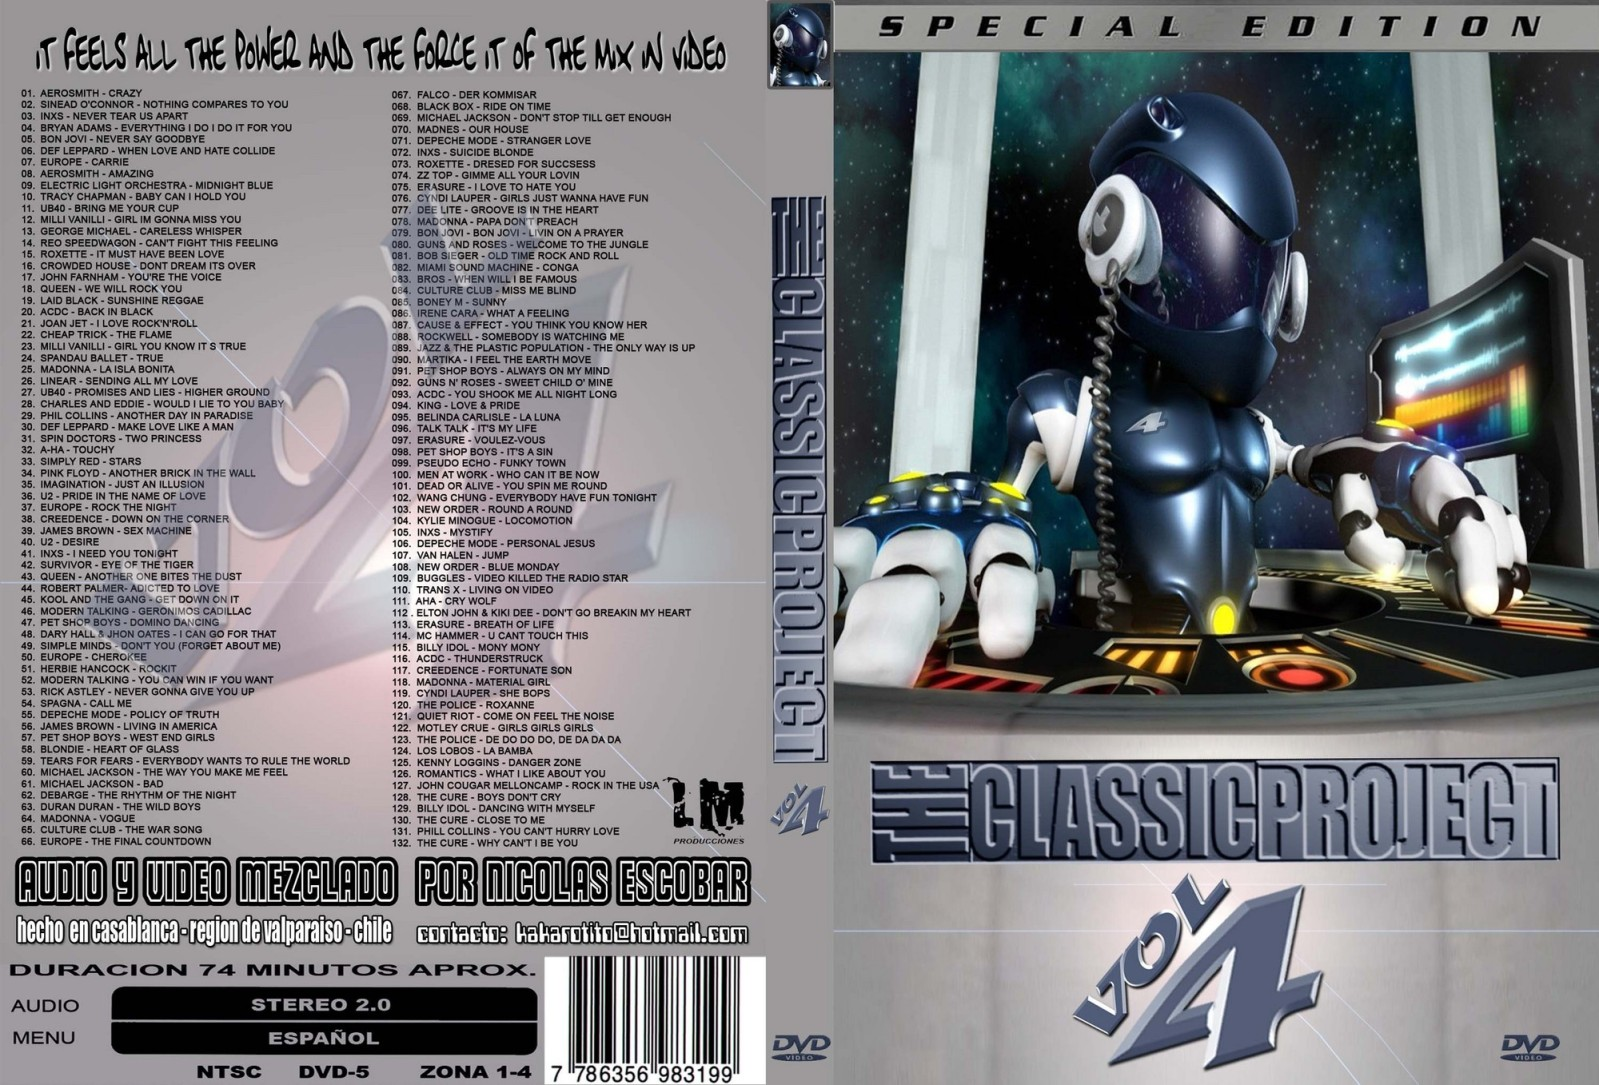 Radioteka Mix Chile...: The Classic Project 4 Mp3